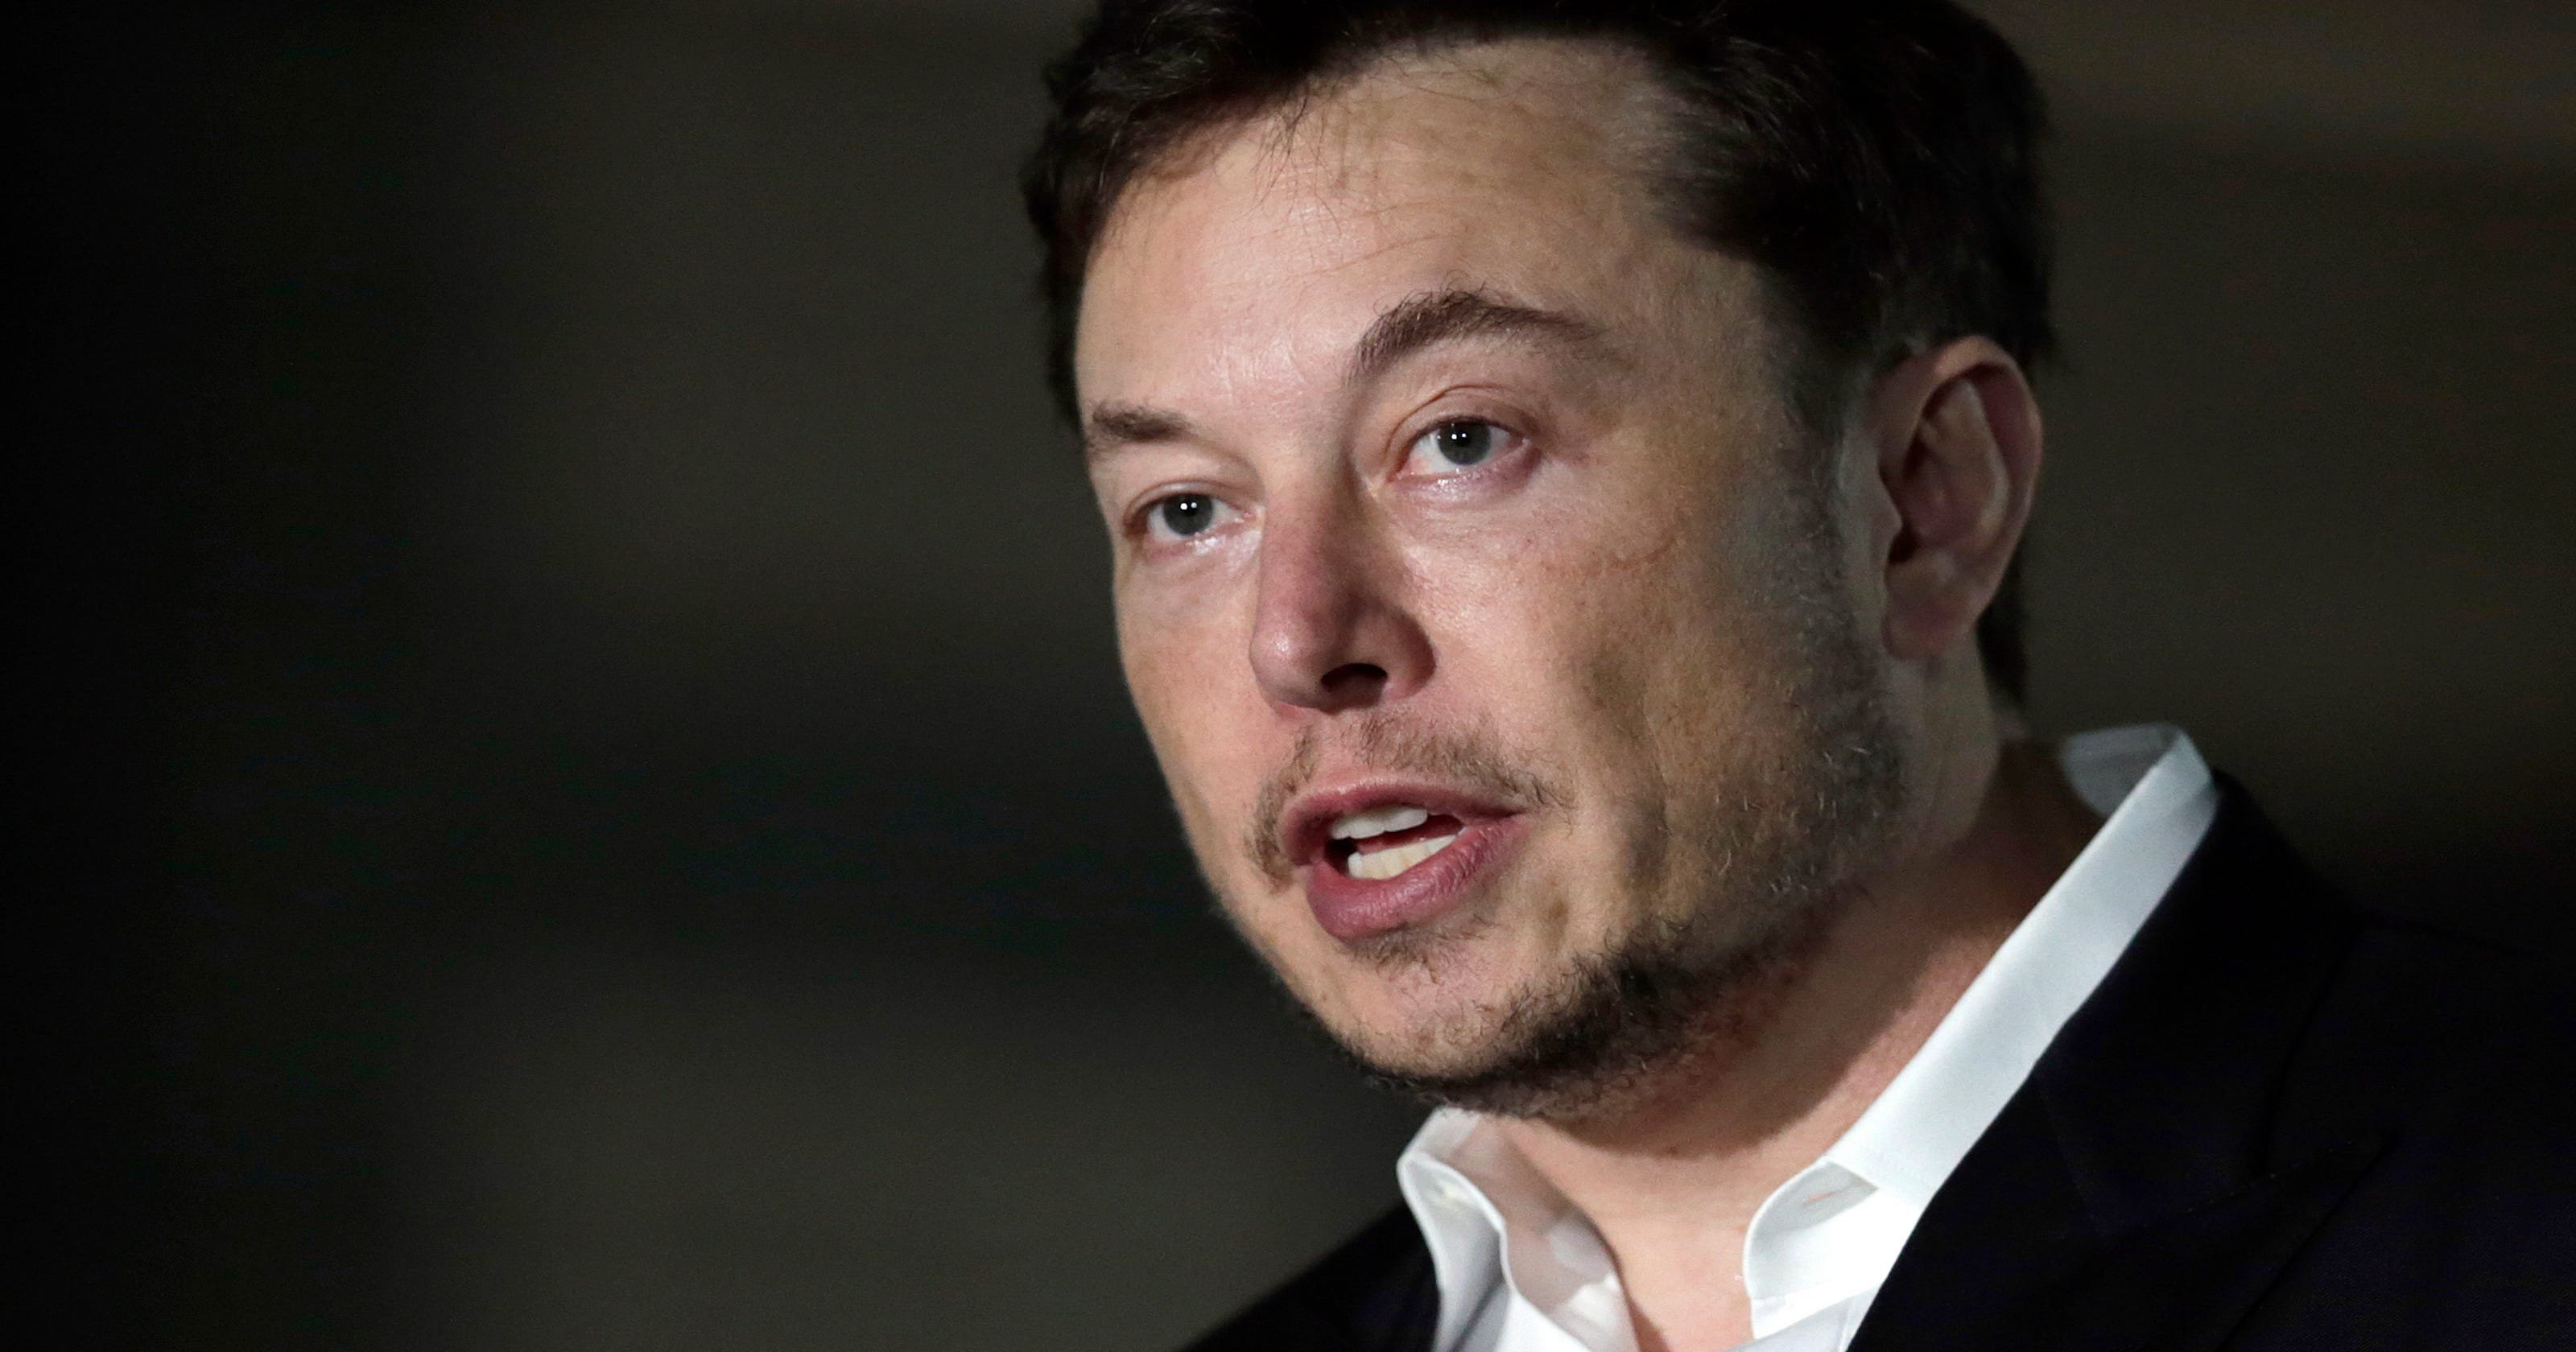 Elon Musk, Tesla face trials over tweets to go privately